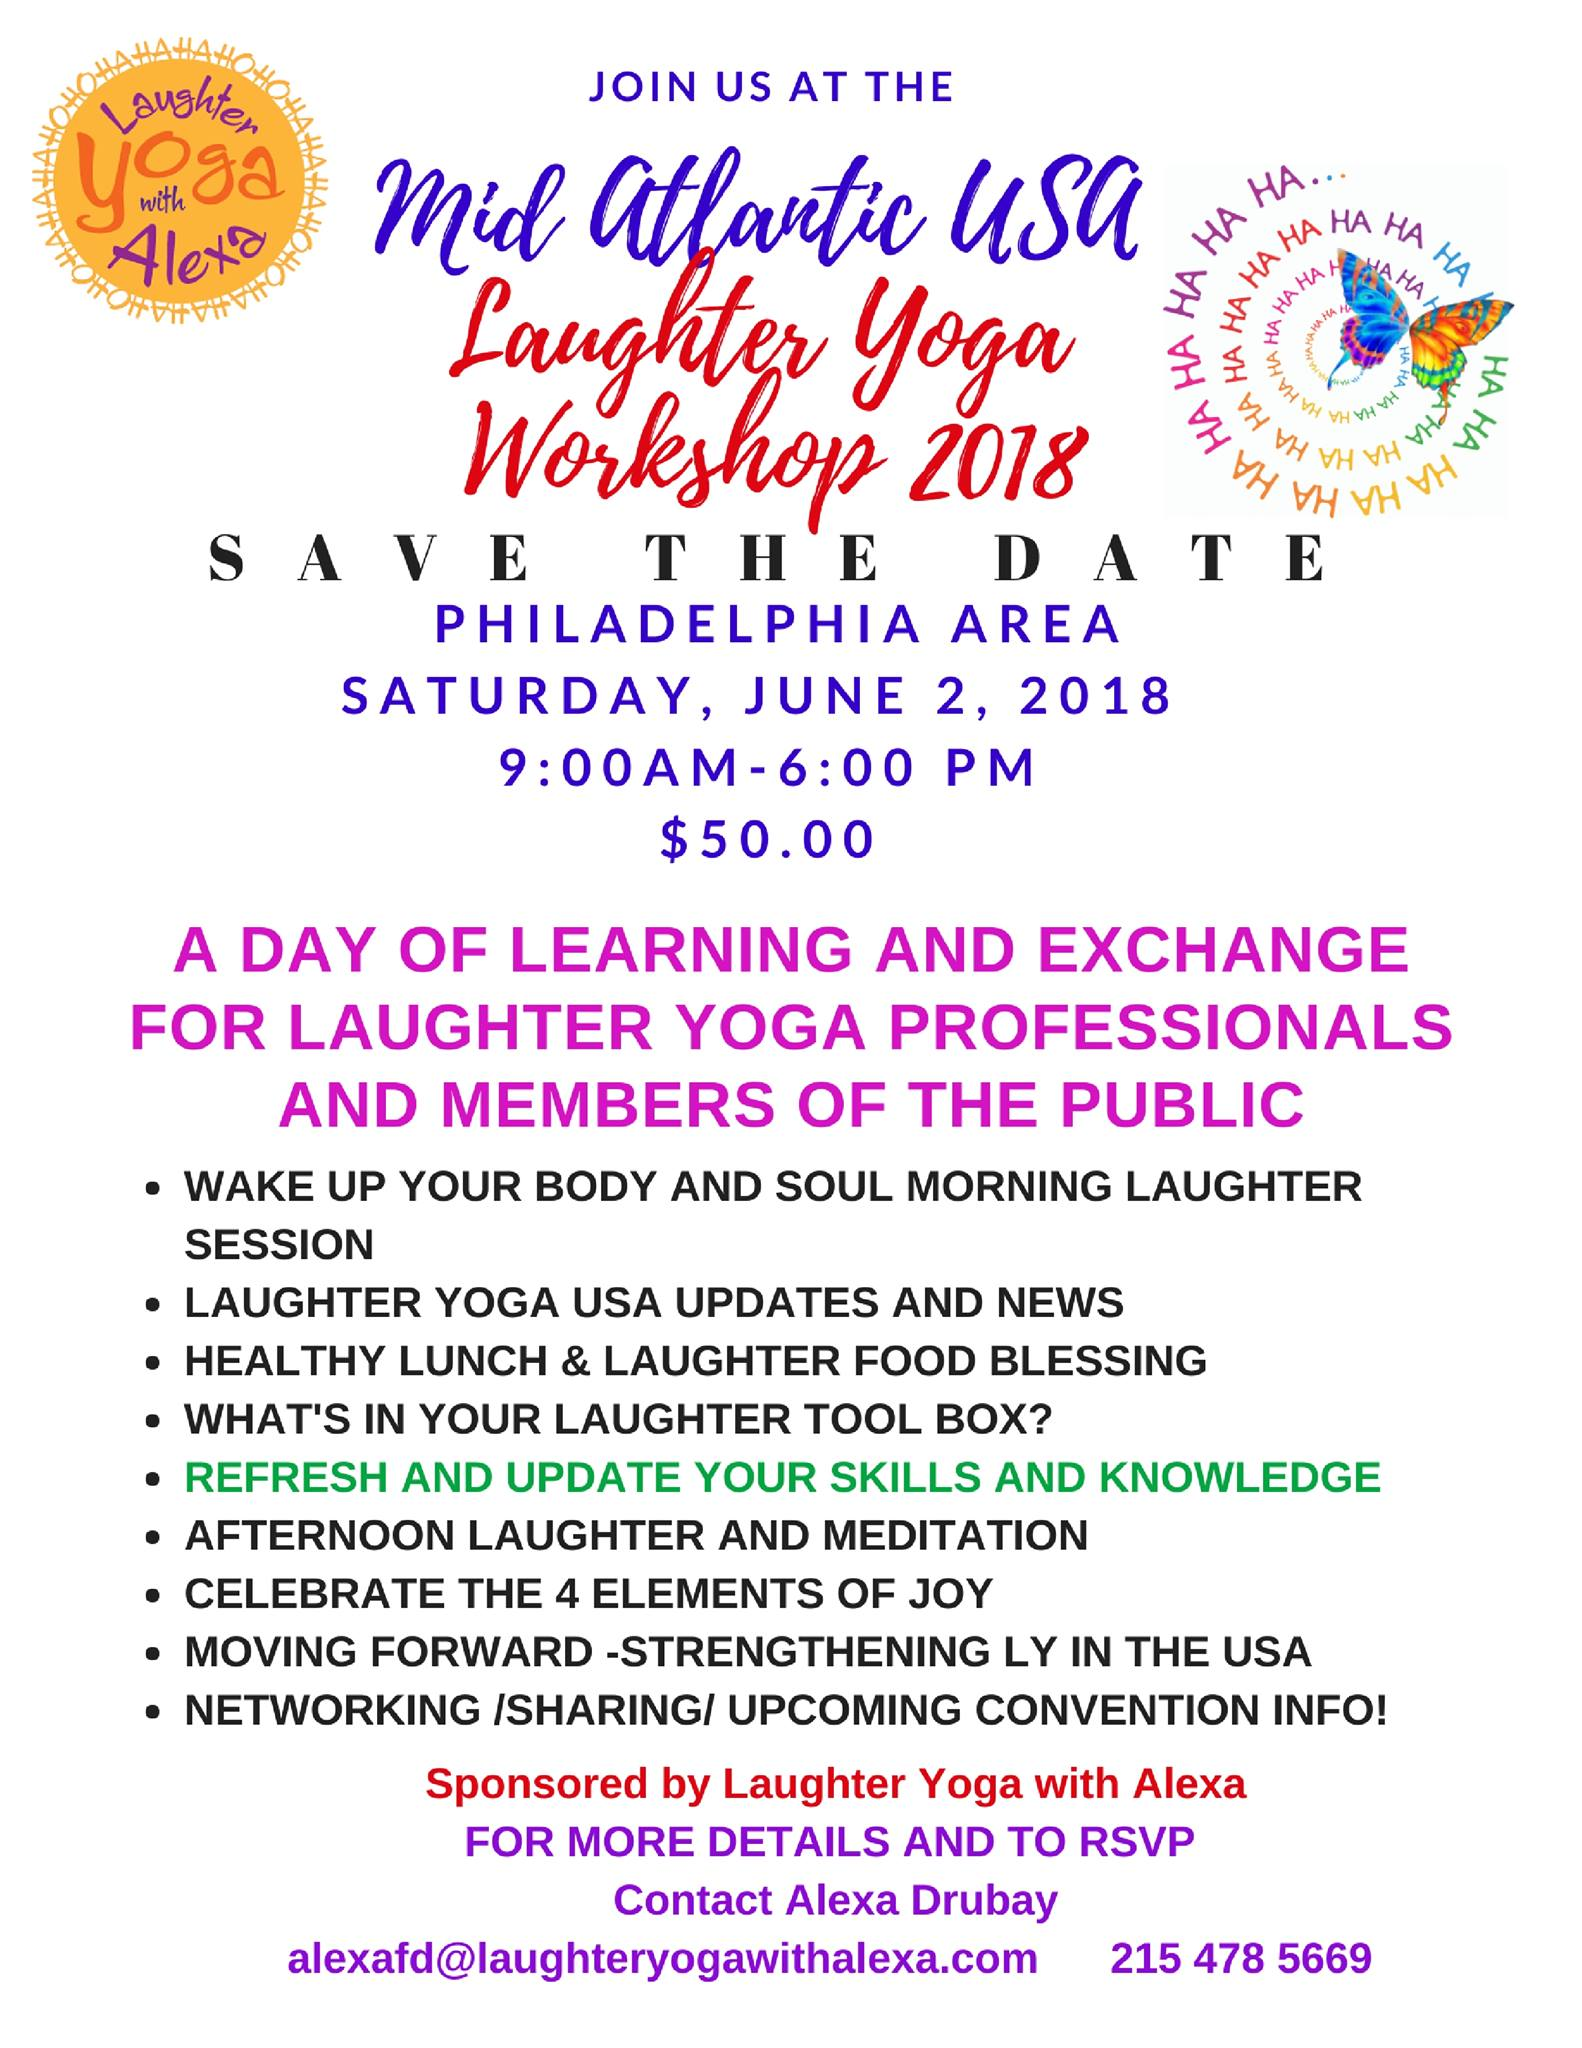 20 Laughter Yoga Exercises